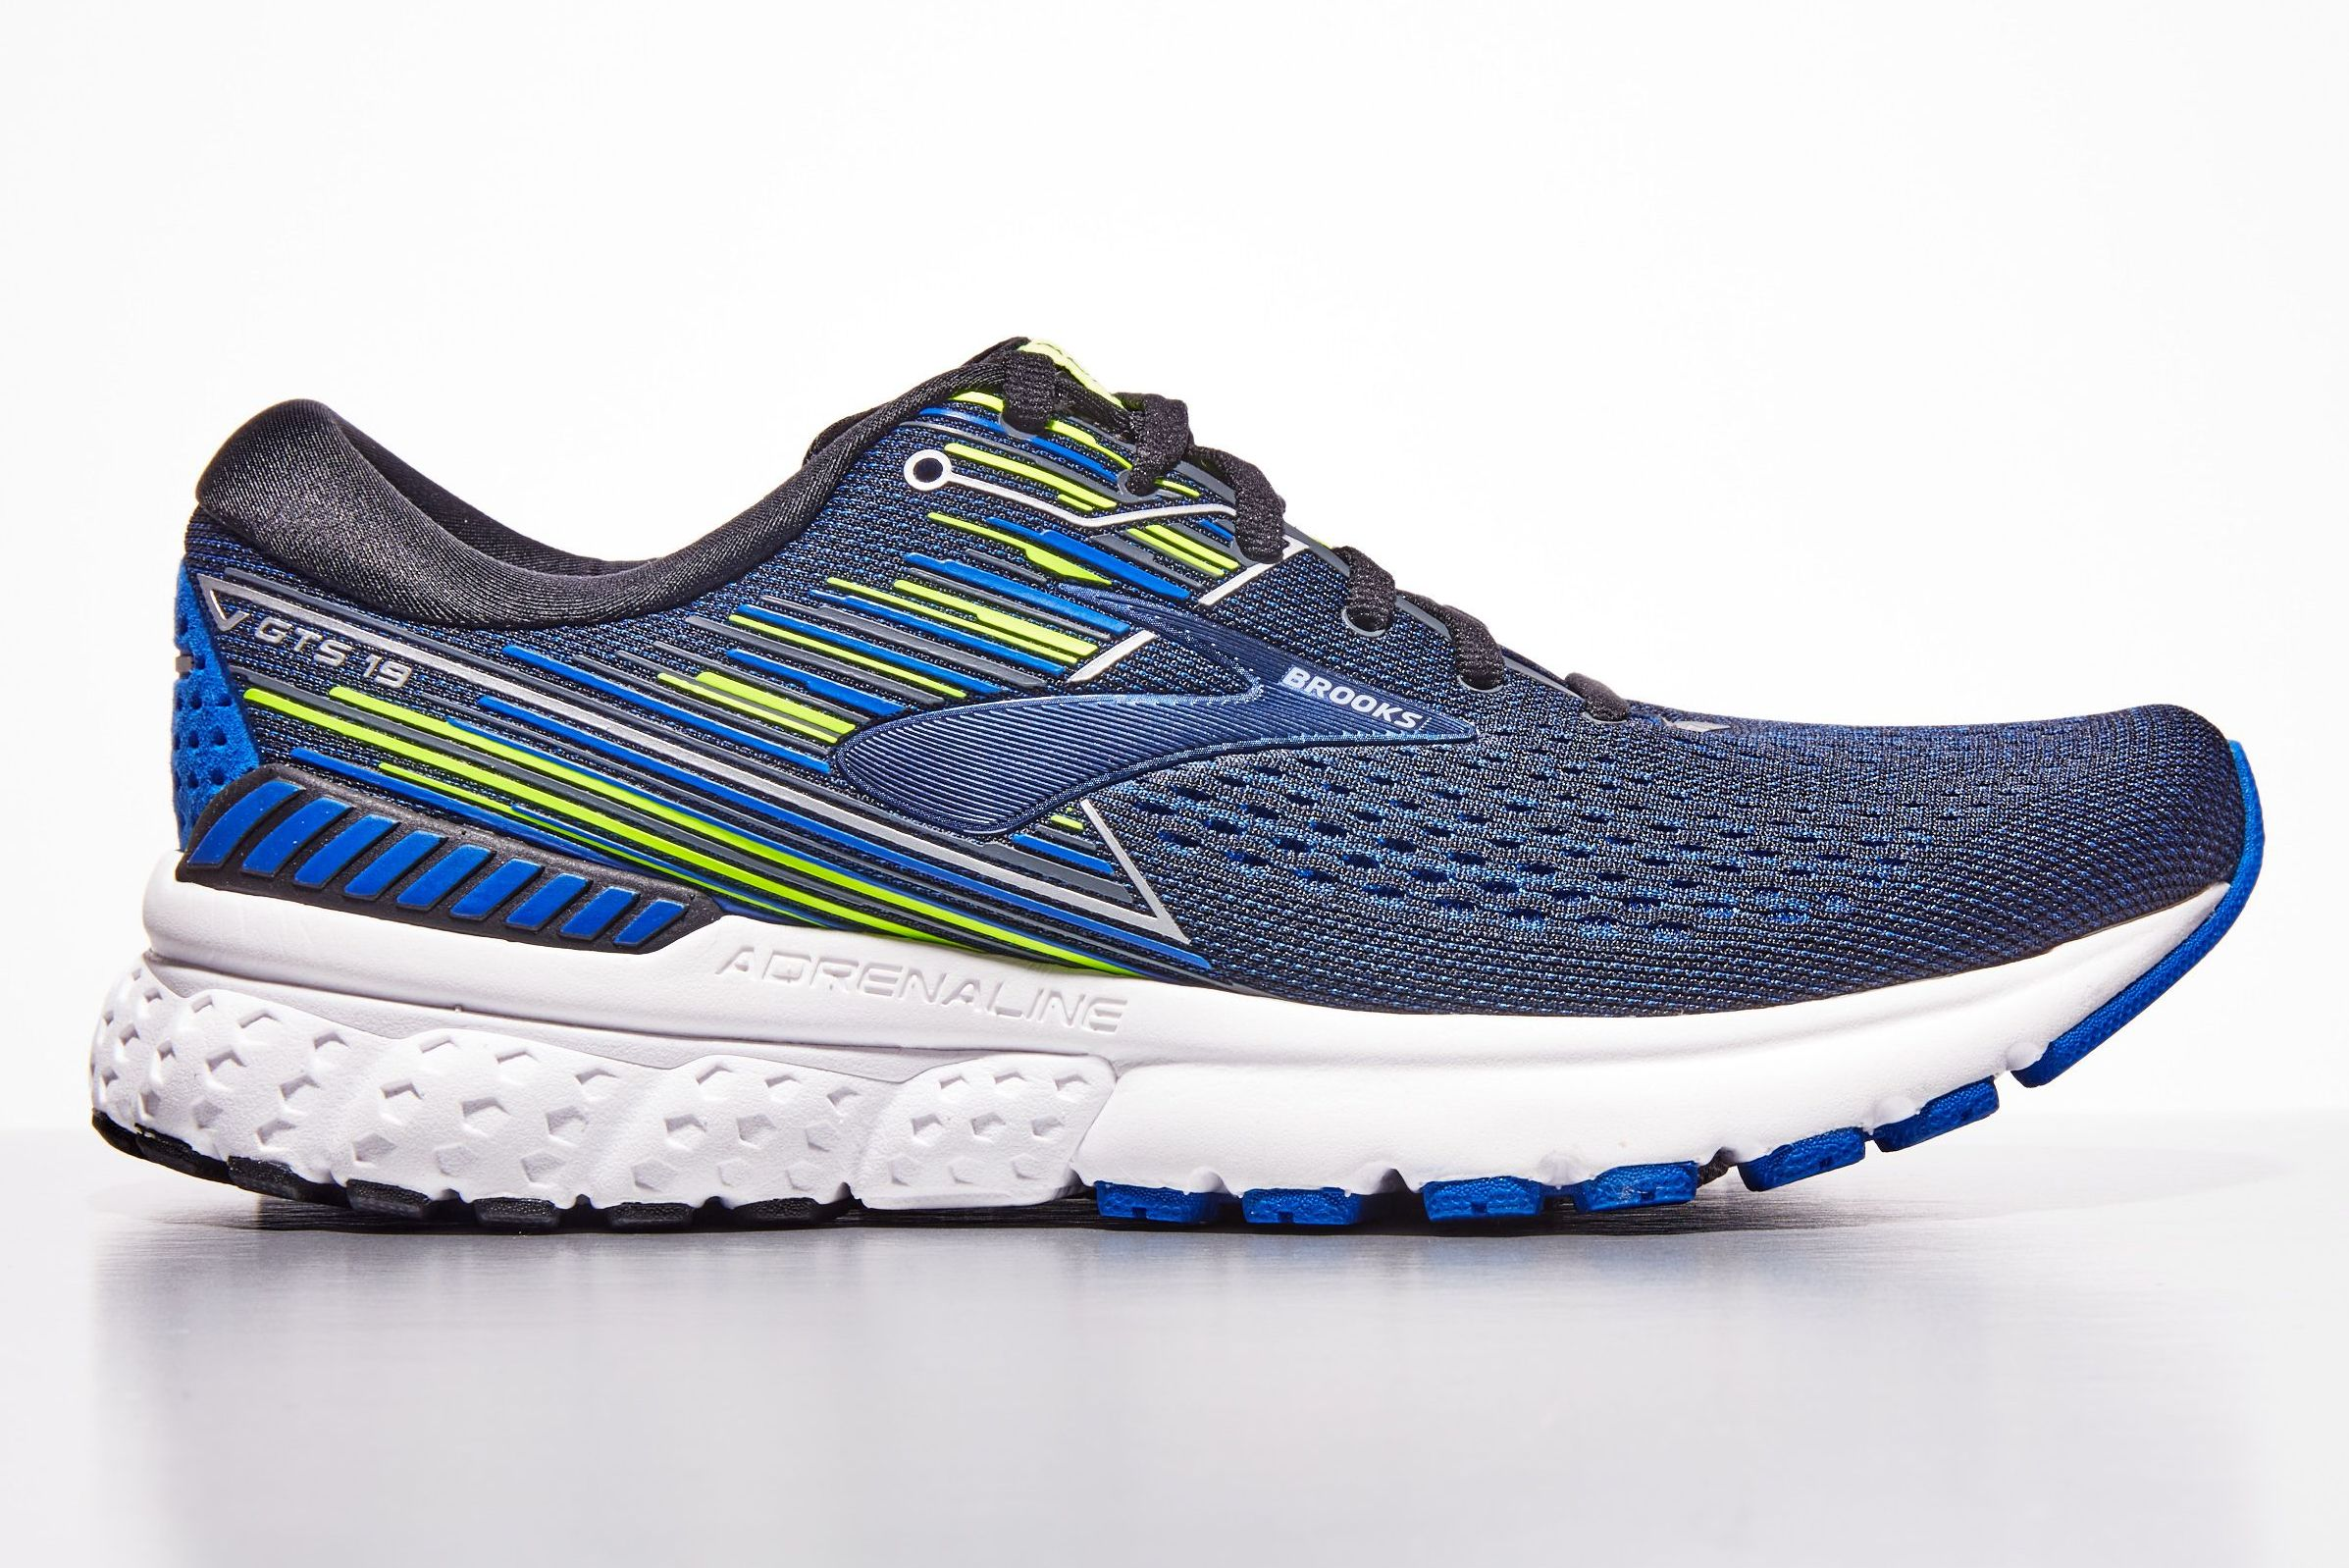 e70666ea65243 Brooks Adrenaline GTS 19 - Stability Running Shoes